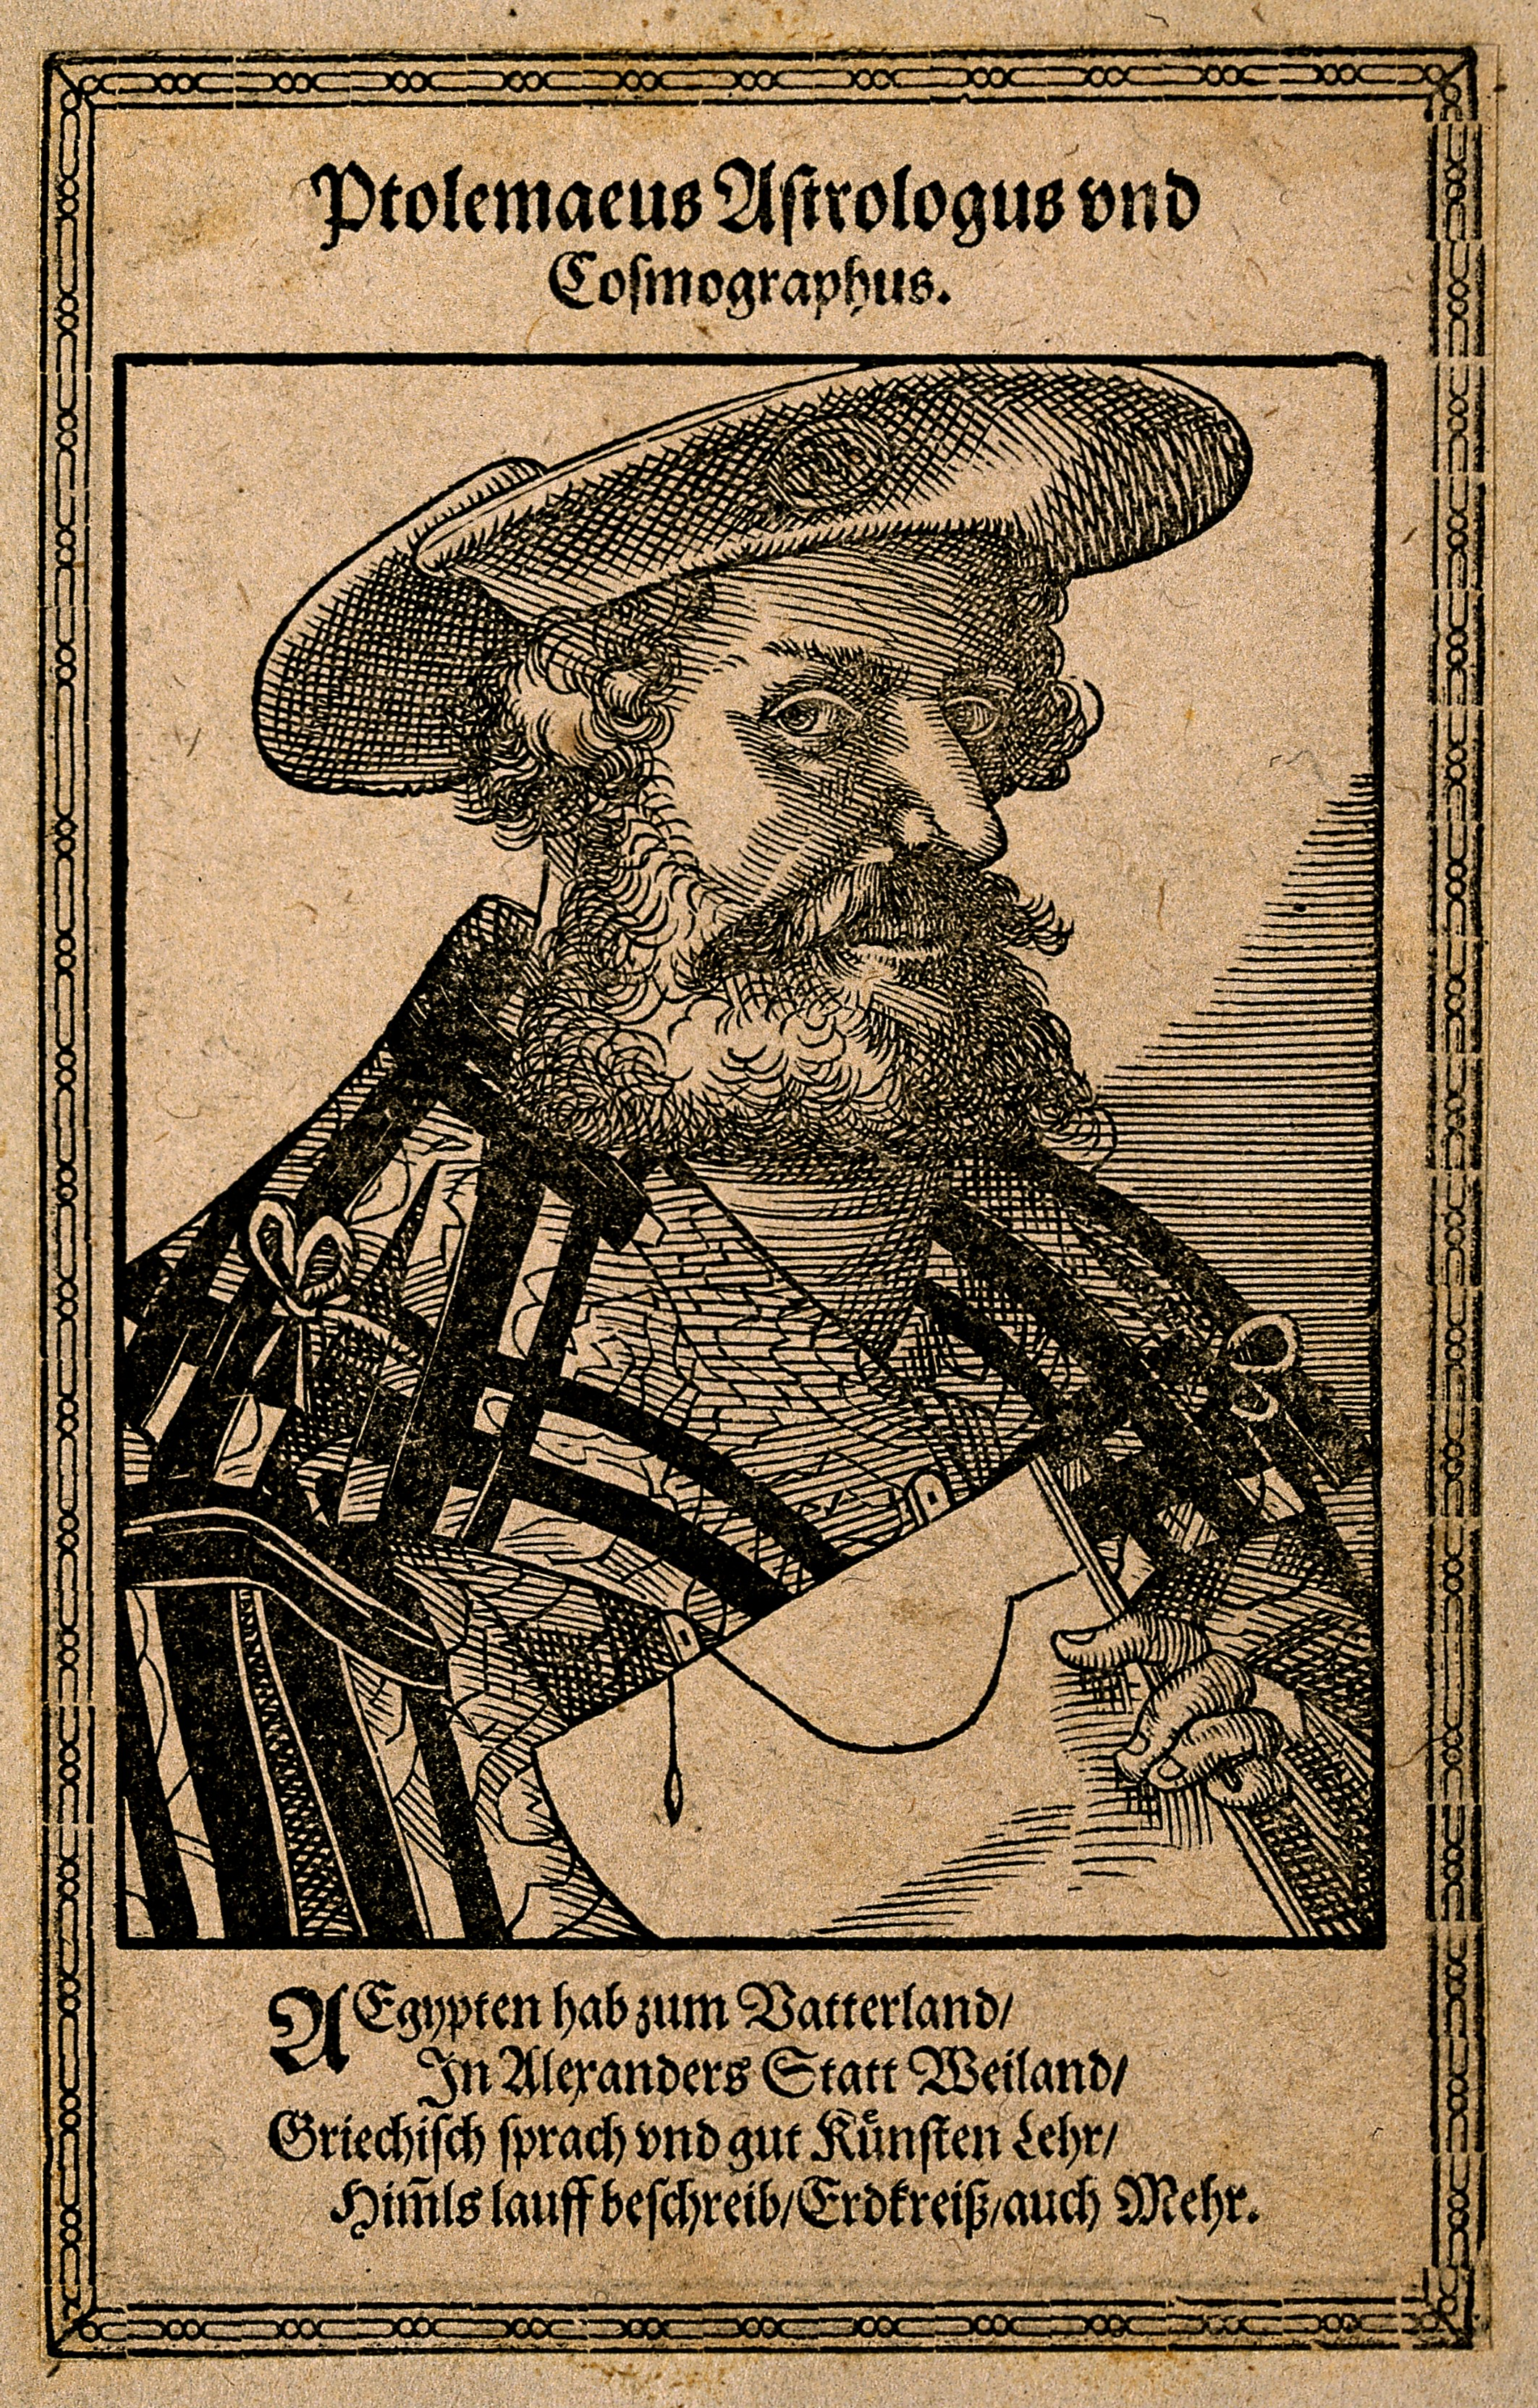 File:Claudius Ptolemaeus (Ptolemy). Woodcut by T. Stimmer, 1587.